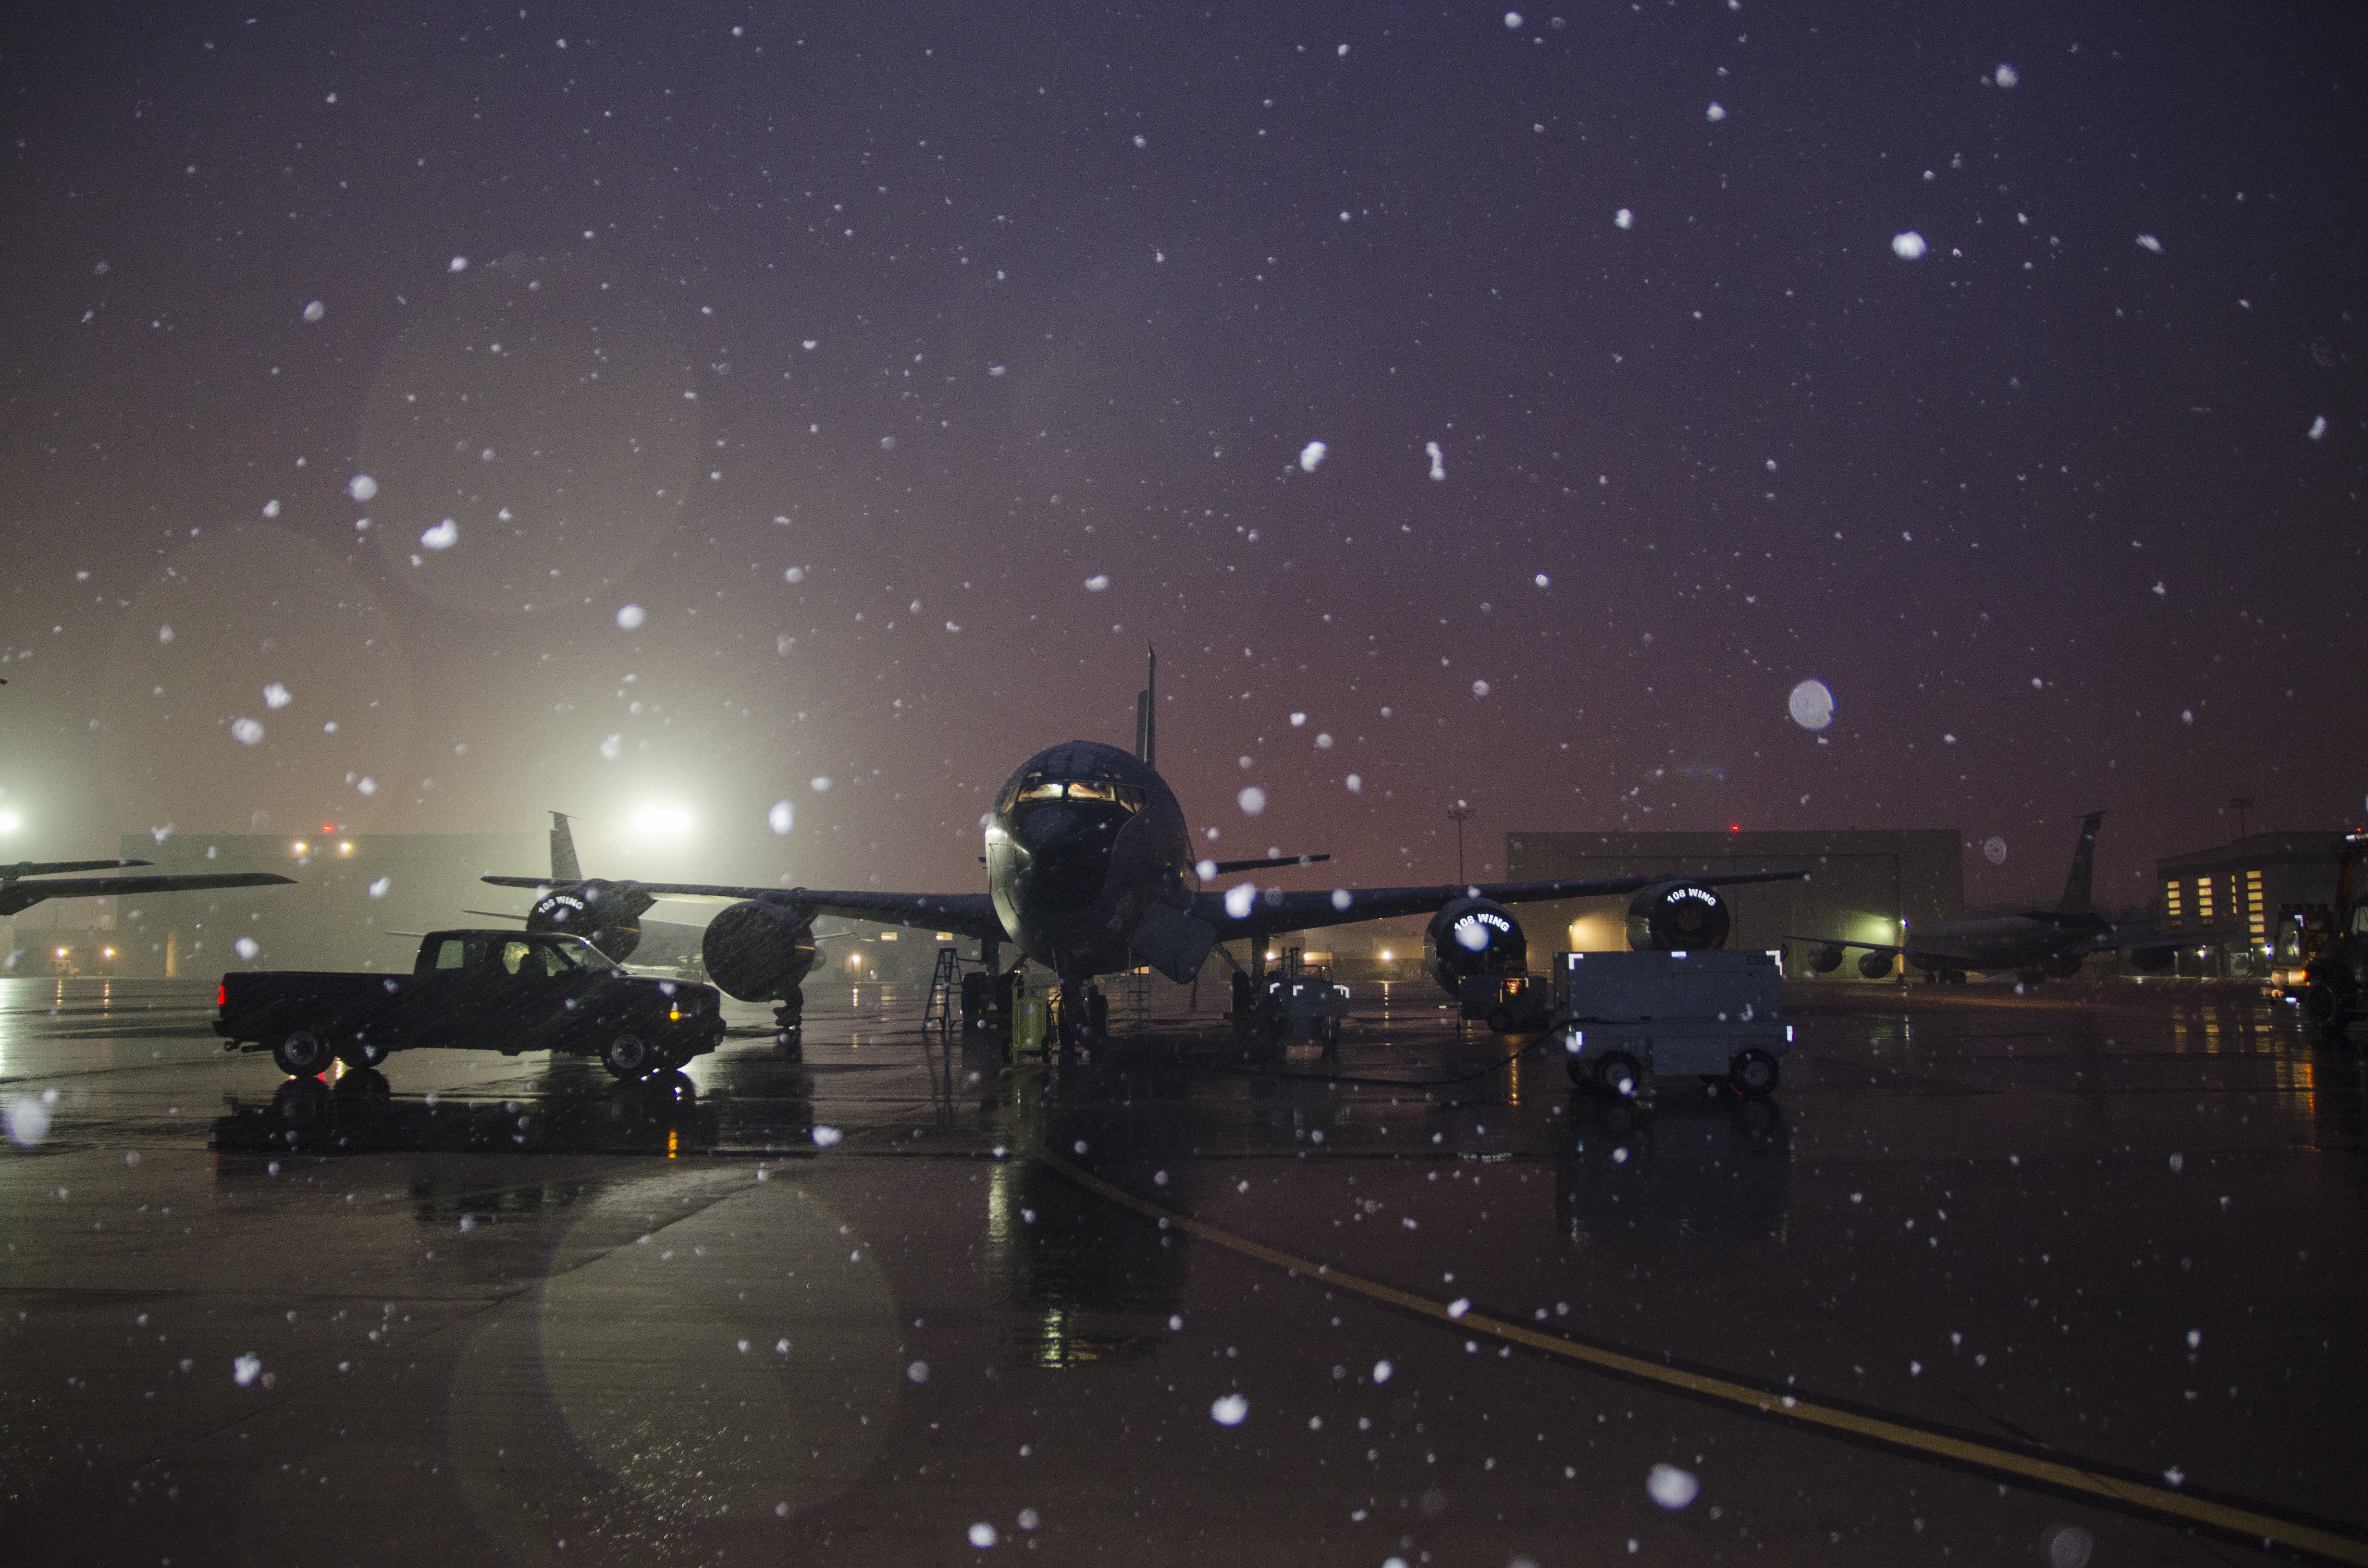 Snow falls as a 141st Air Refueling Squadron KC135R is prepped on the flightline at Joint Base McGuire-Dix-Lakehurst, N.J., Jan. 17, 2018. (Staff Sgt. Ross A. Whitley/Air National Guard)